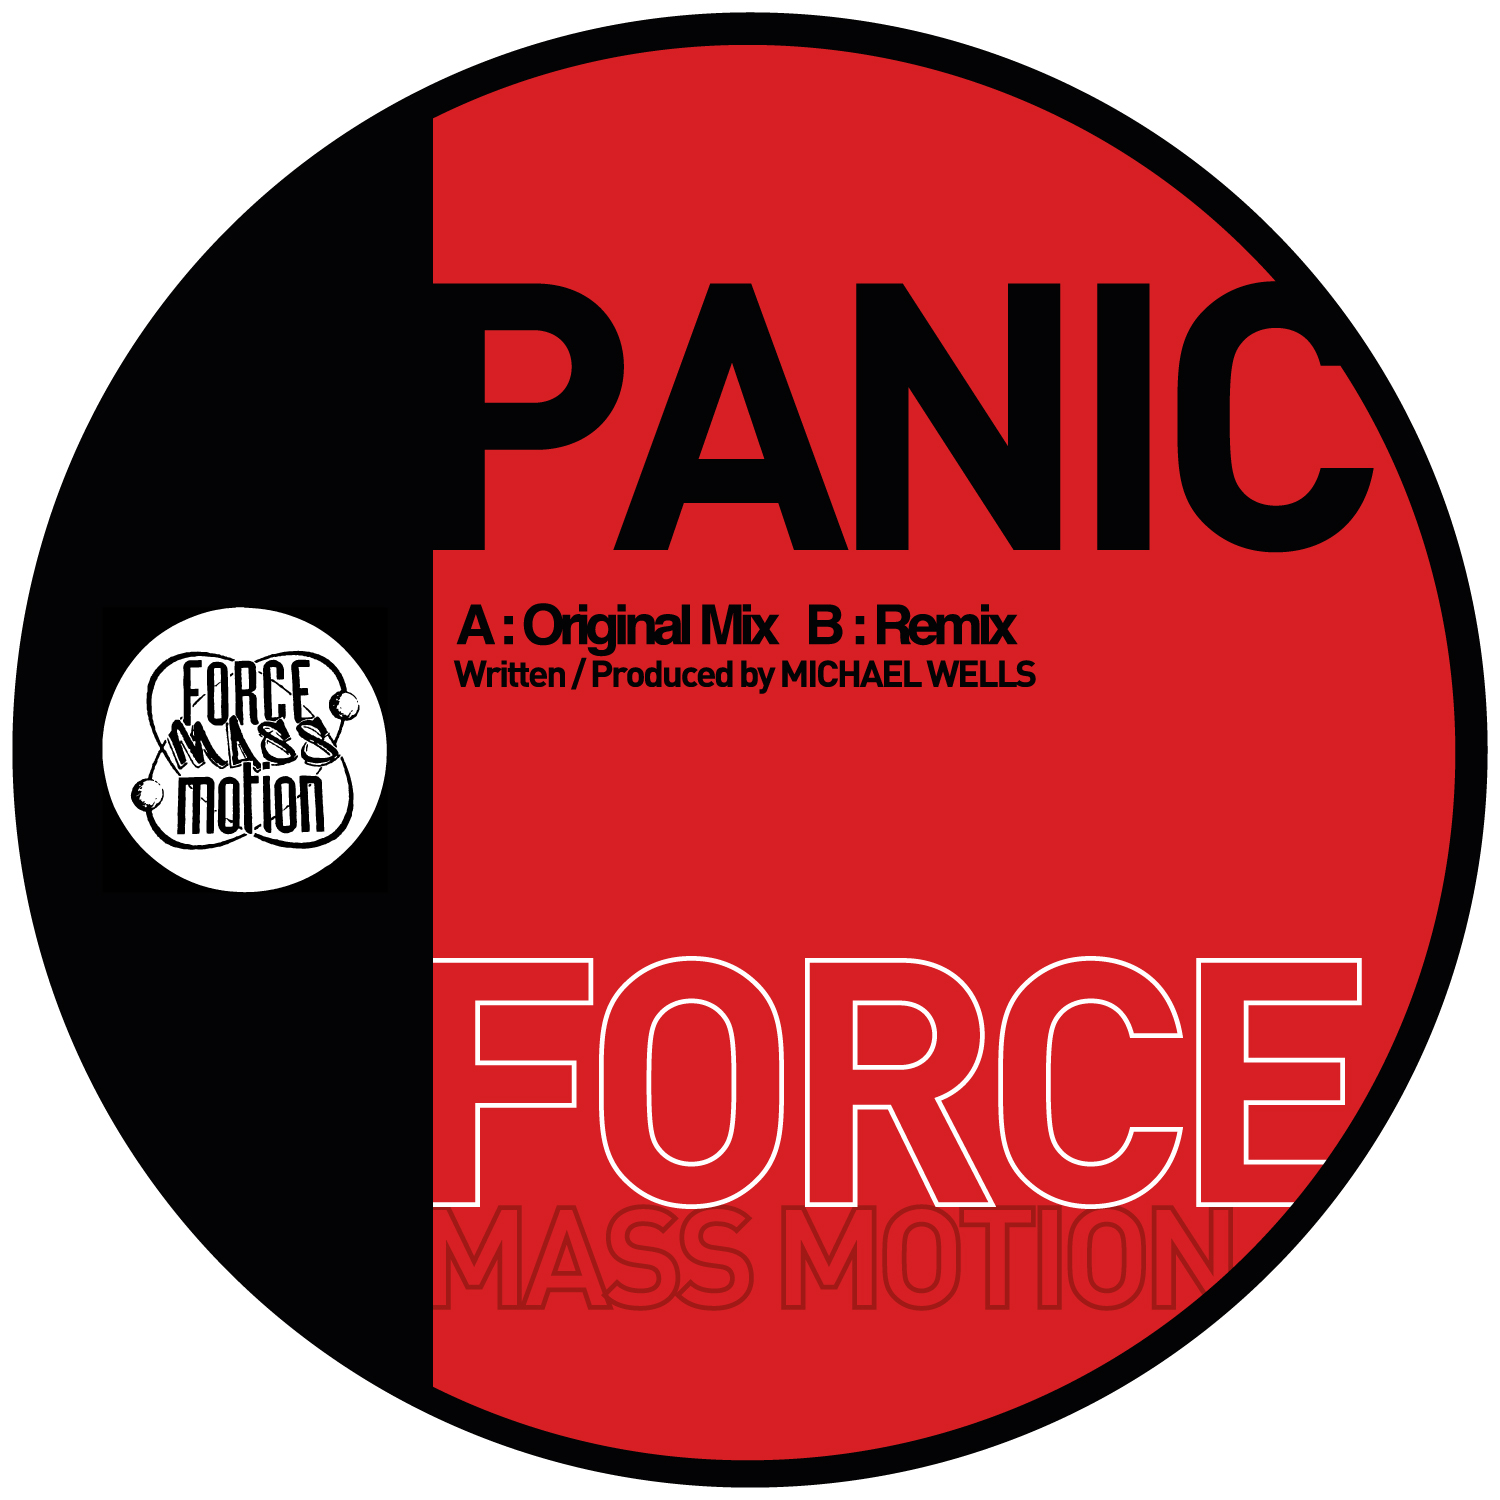 "[FMM01] Force Mass Motion - Panic EP (12"" Vinyl + Digital)"